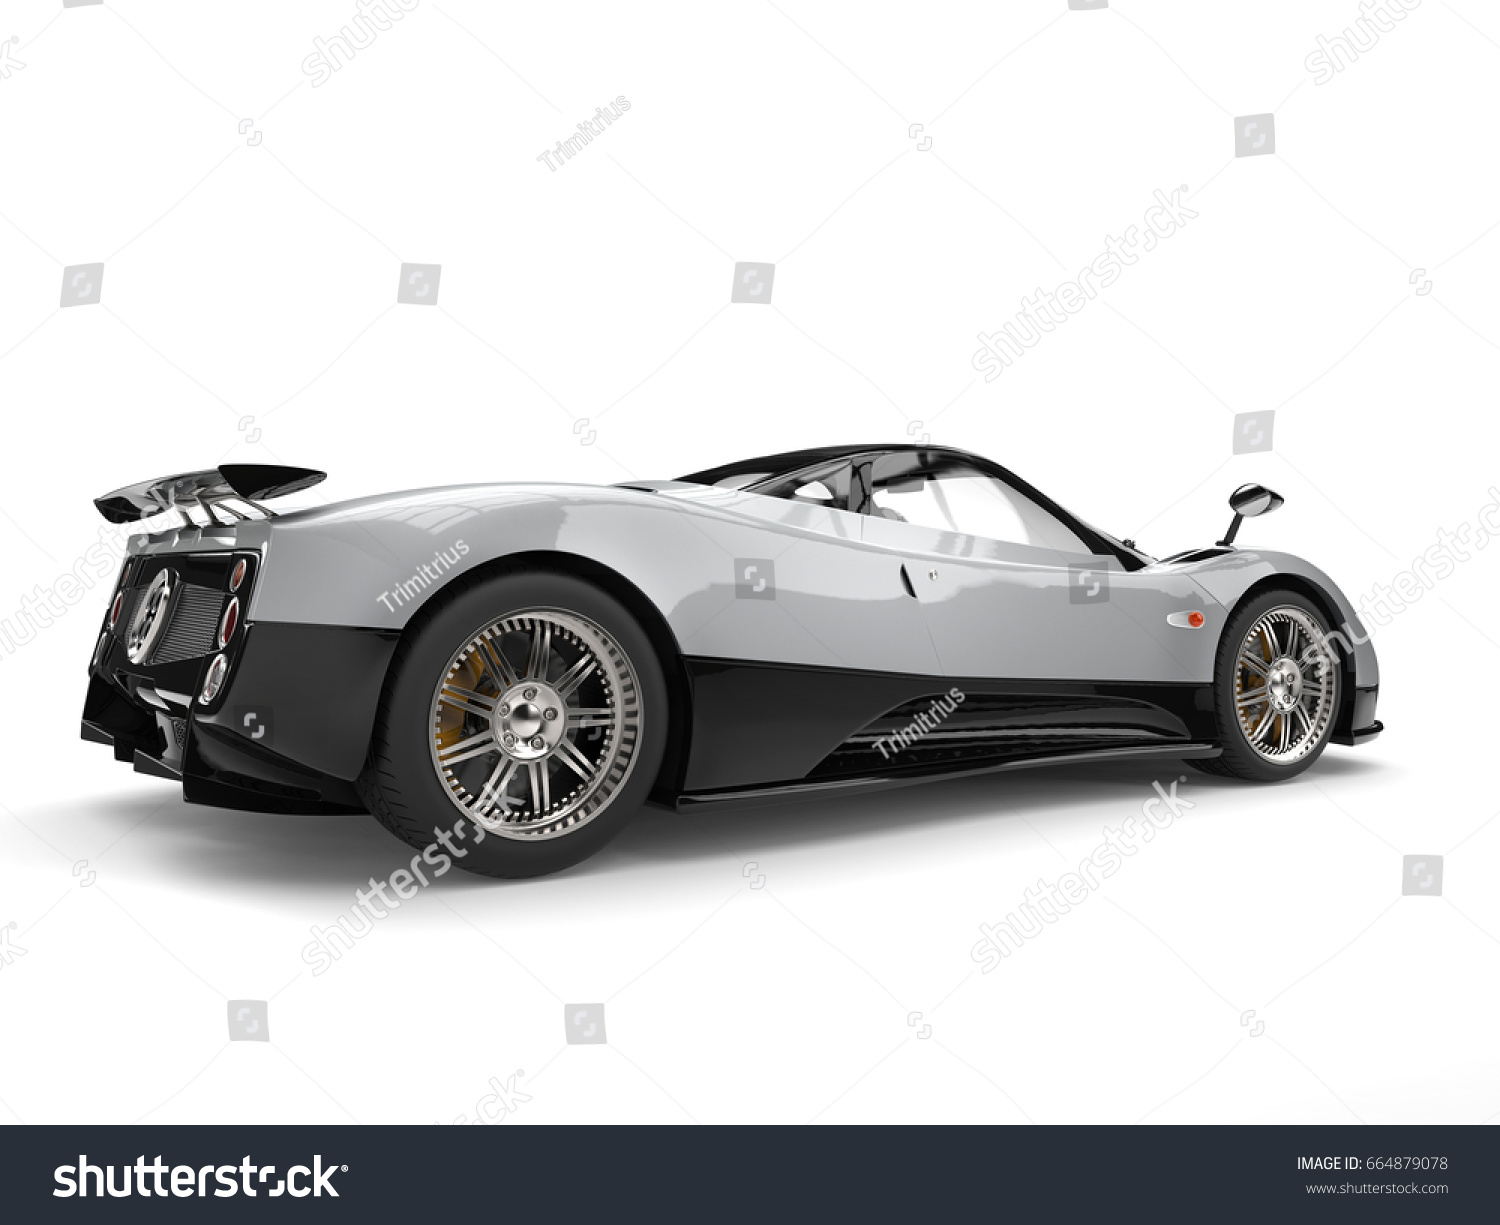 Luxury Modern Sports Car Silver Black Stock Illustration - Modern sports cars